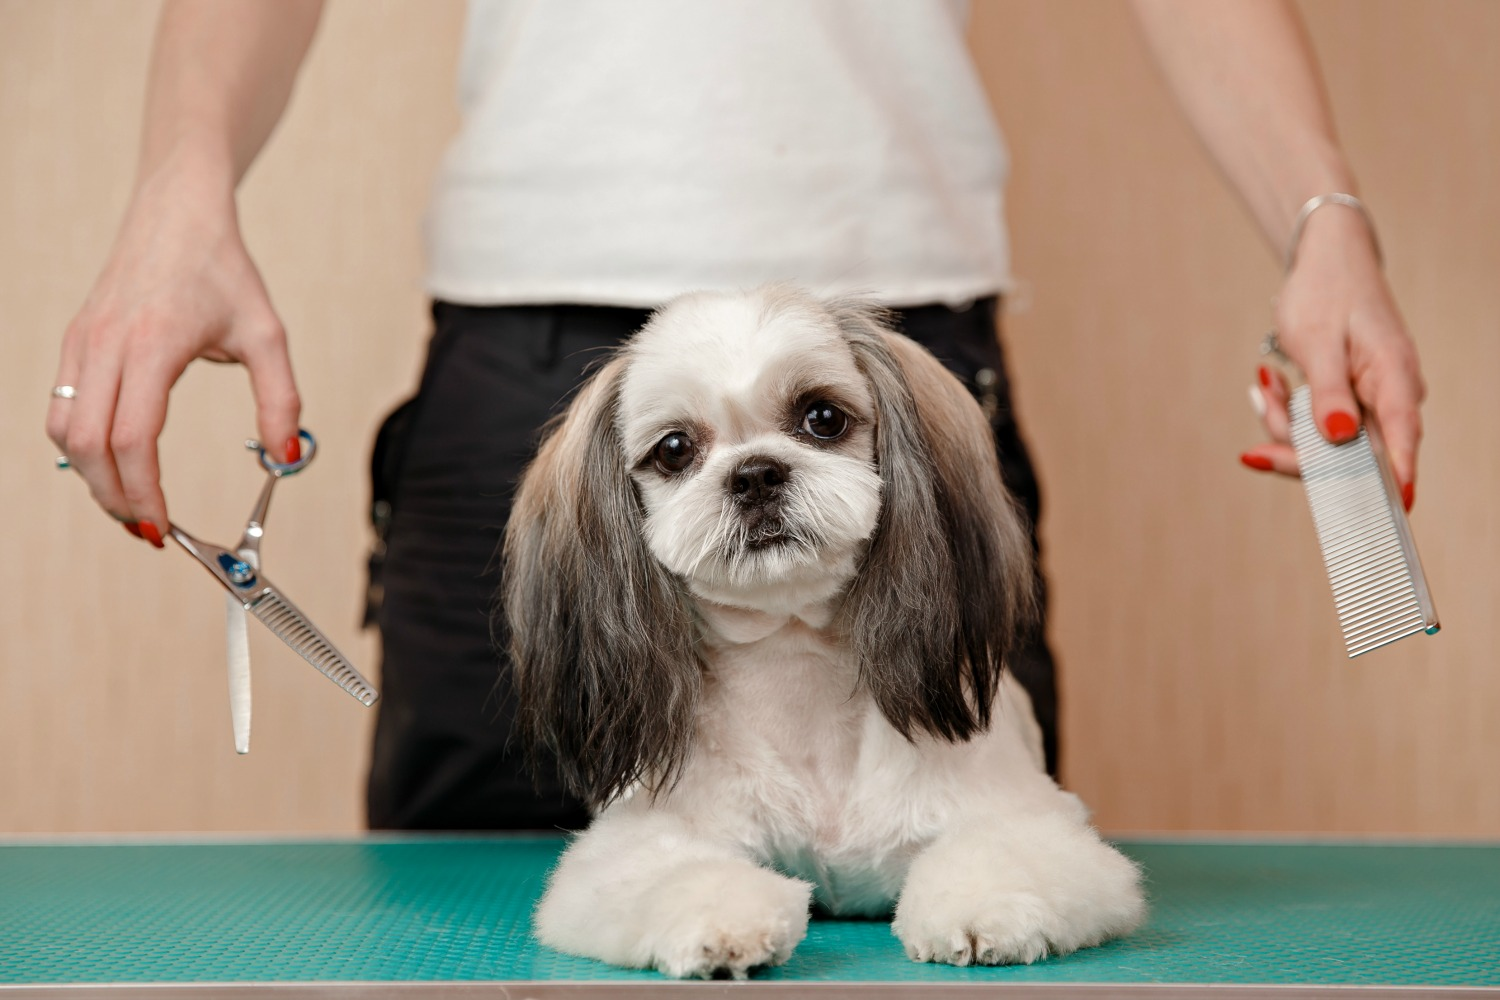 Cozy It May Save Some Money To Do Shih Tzu Grooming But It Takes A Diy Shih Tzu Grooming Tips How Often Shih Tzus Need Pro Shih Tzu Grooming Ideas Shih Tzu Grooming At Home bark post Shih Tzu Grooming